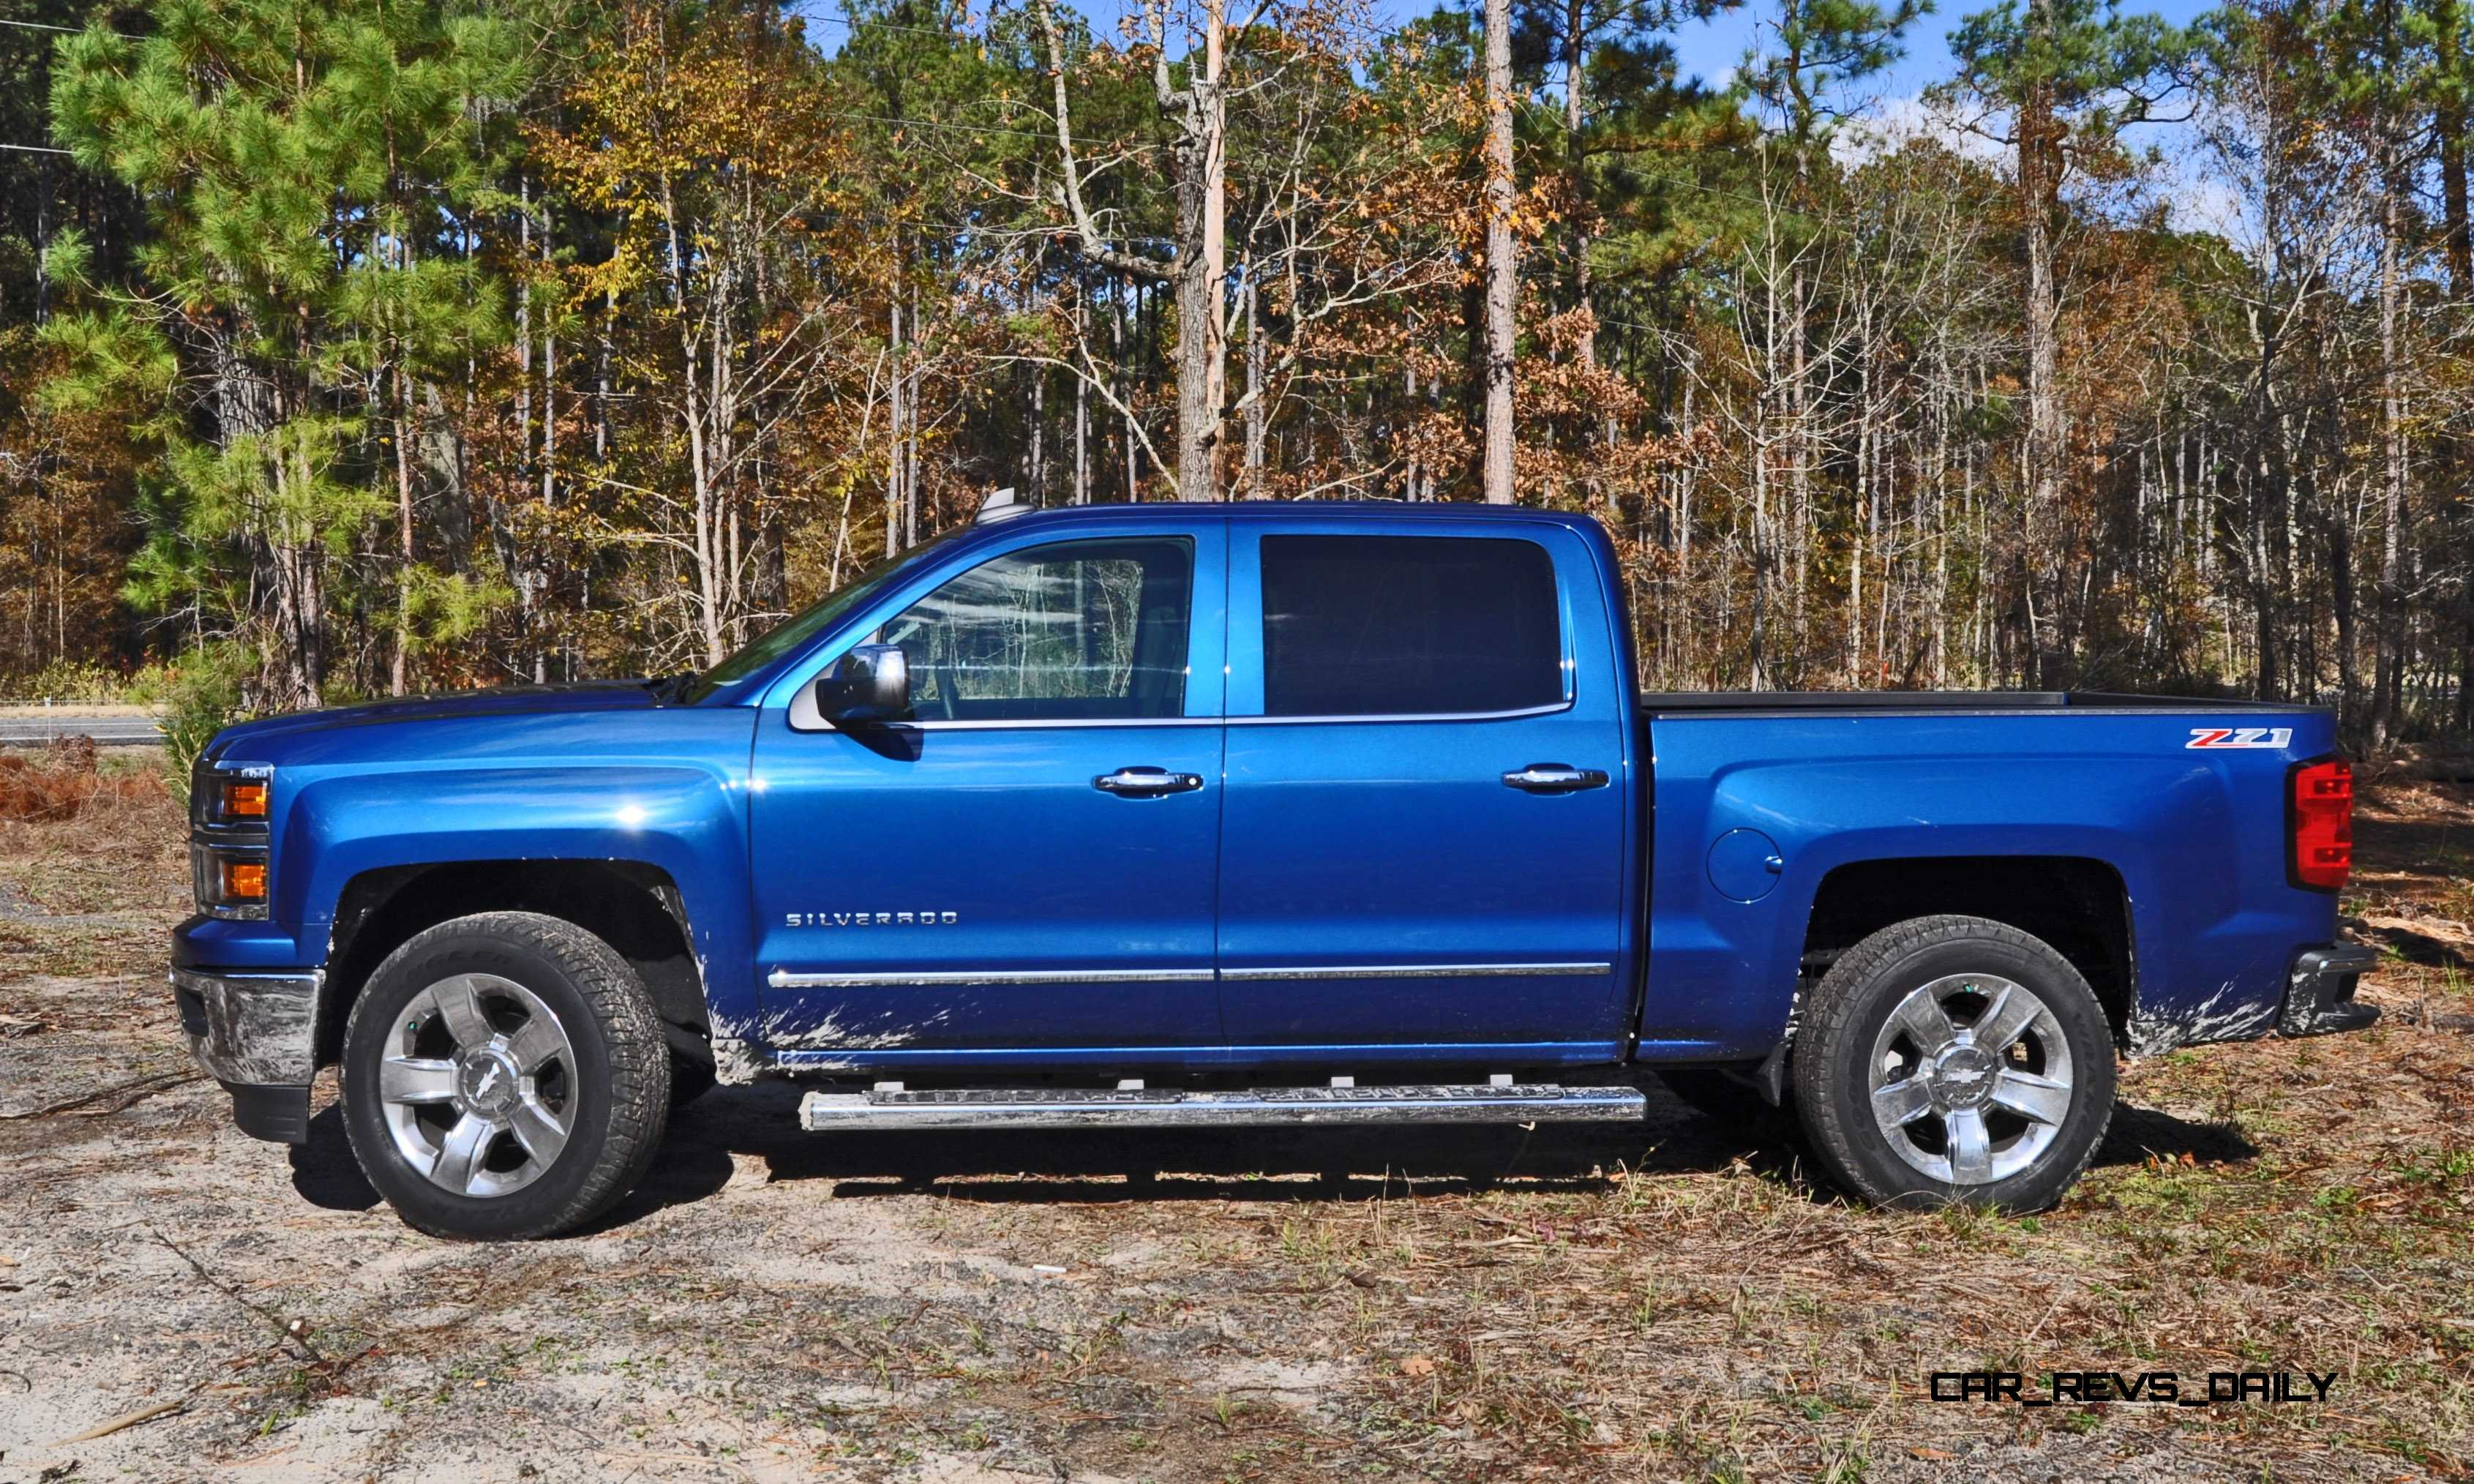 review 2015 chevrolet silverado 1500 z71 is 200k mile 2025 toty. Cars Review. Best American Auto & Cars Review